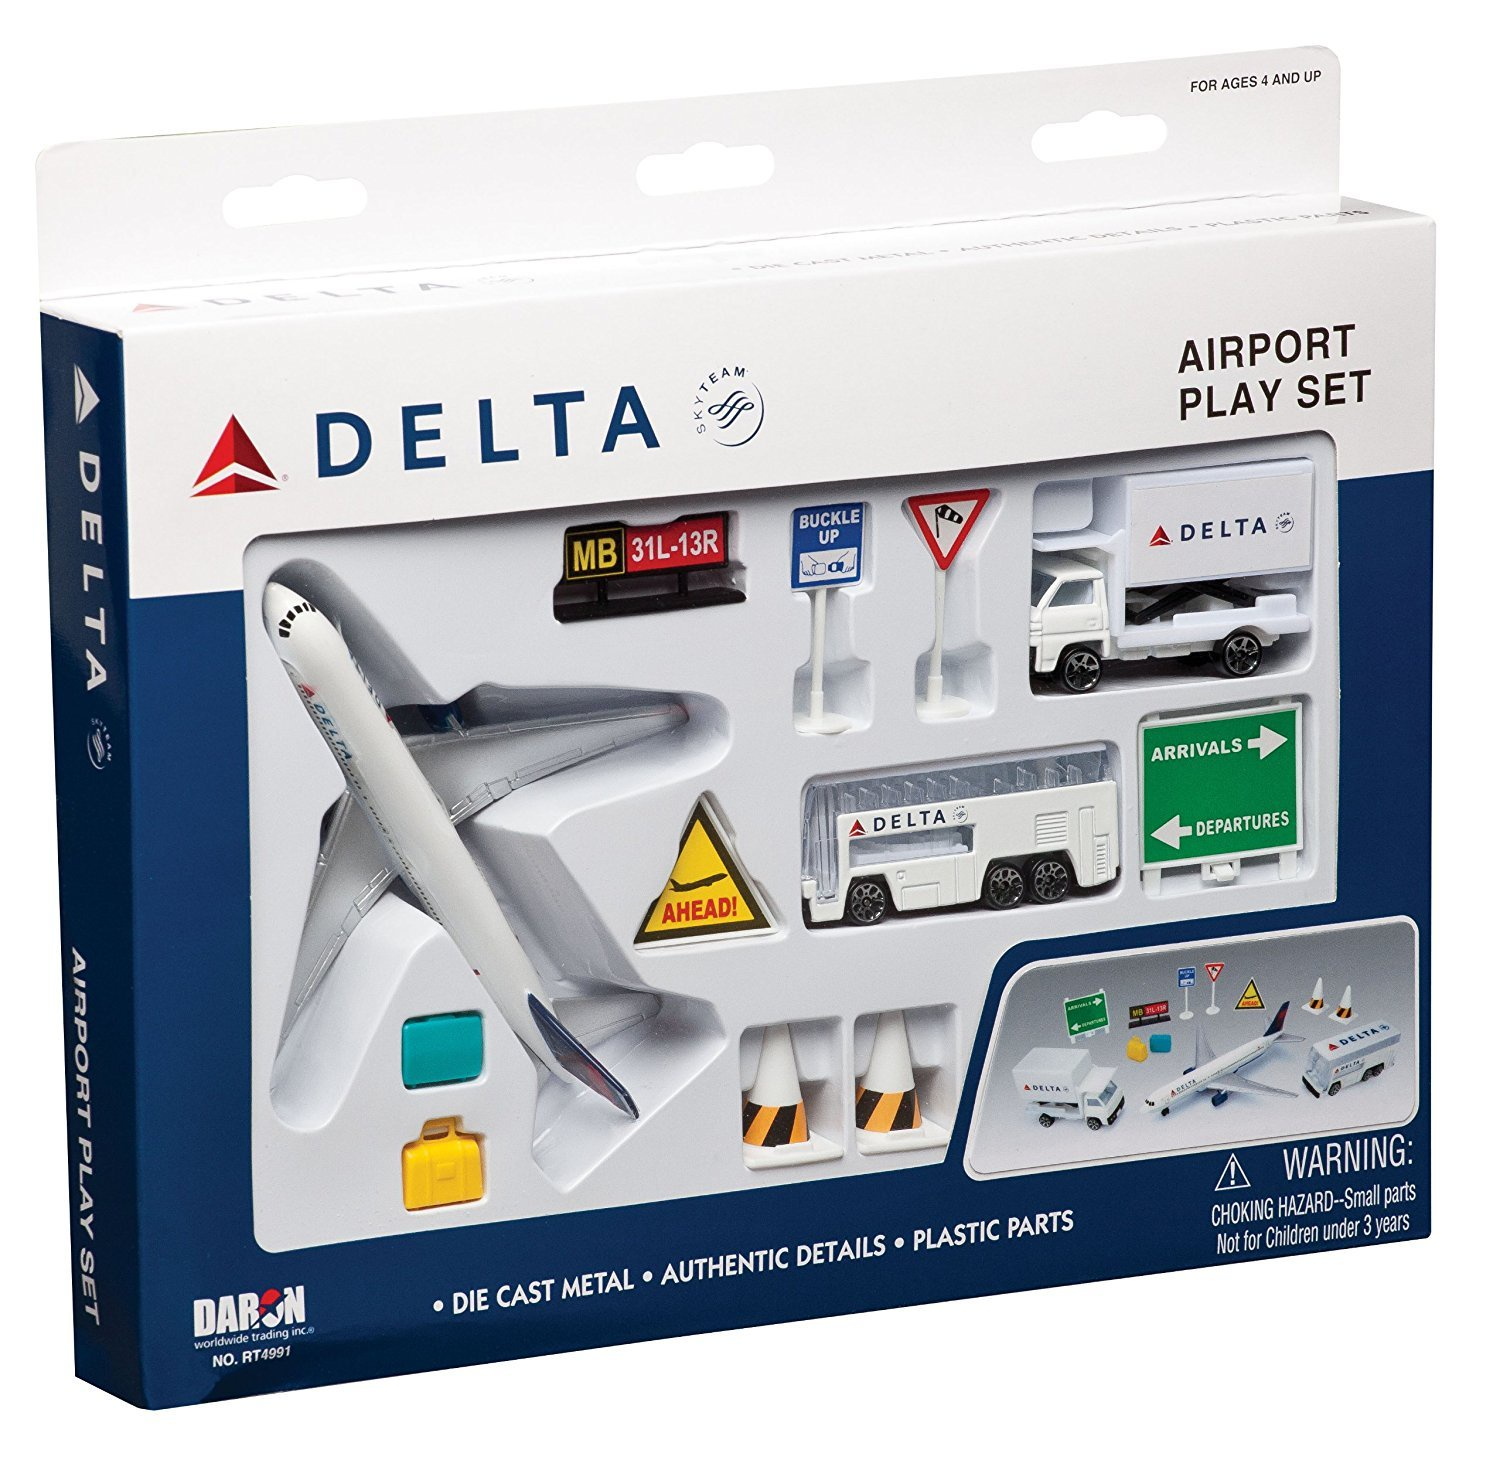 DELTA AIR LINES PLAYSET